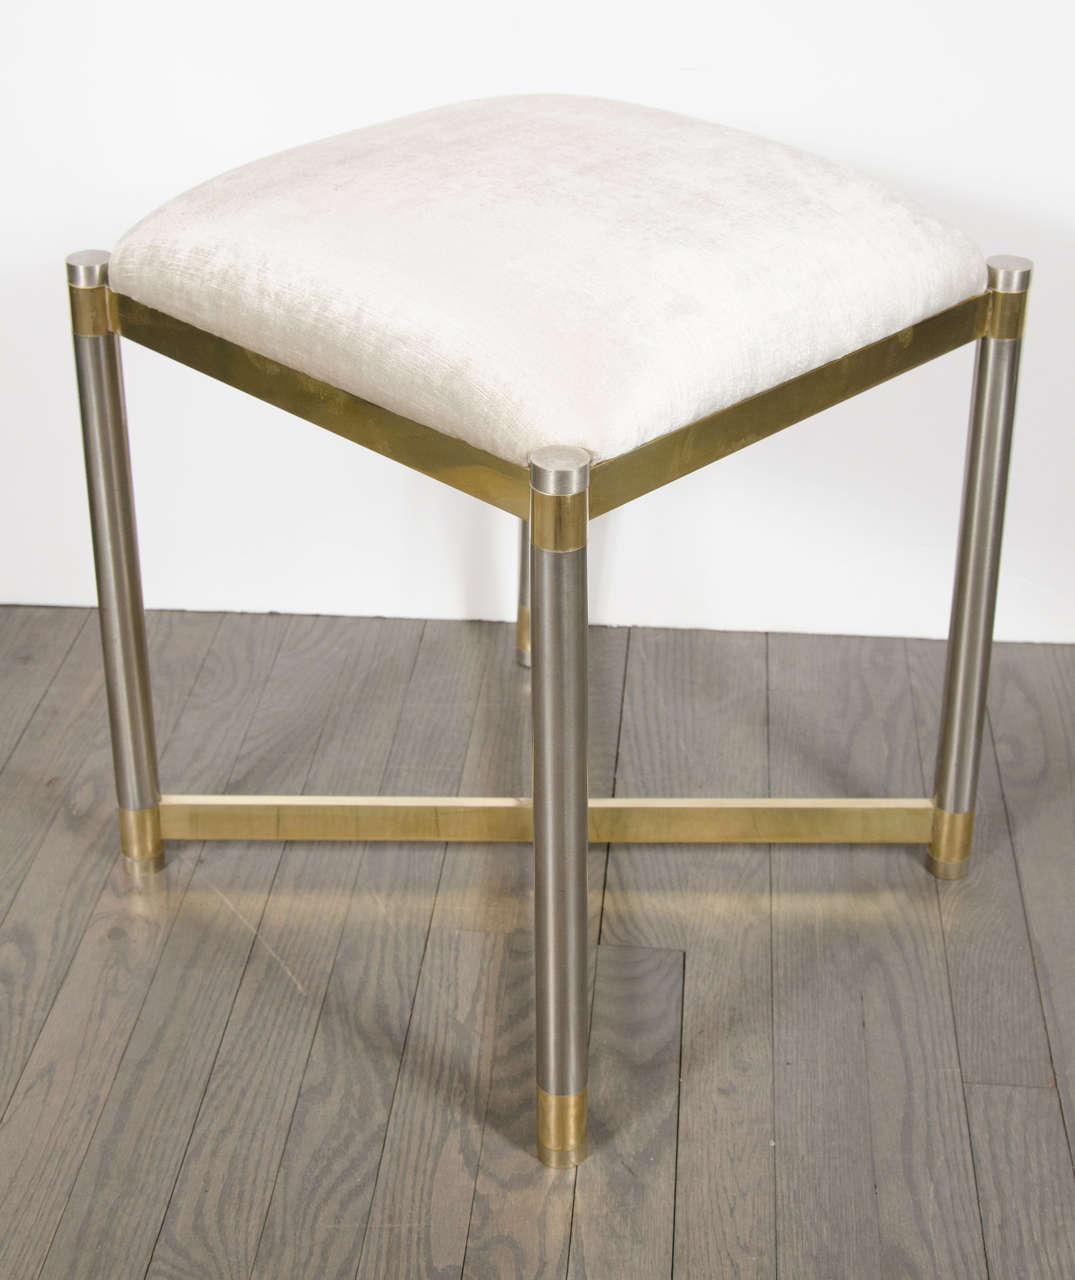 Late 20th Century Mid-Century Modern Chrome & Brass X-Form Stool in the Manner of Karl Springer For Sale